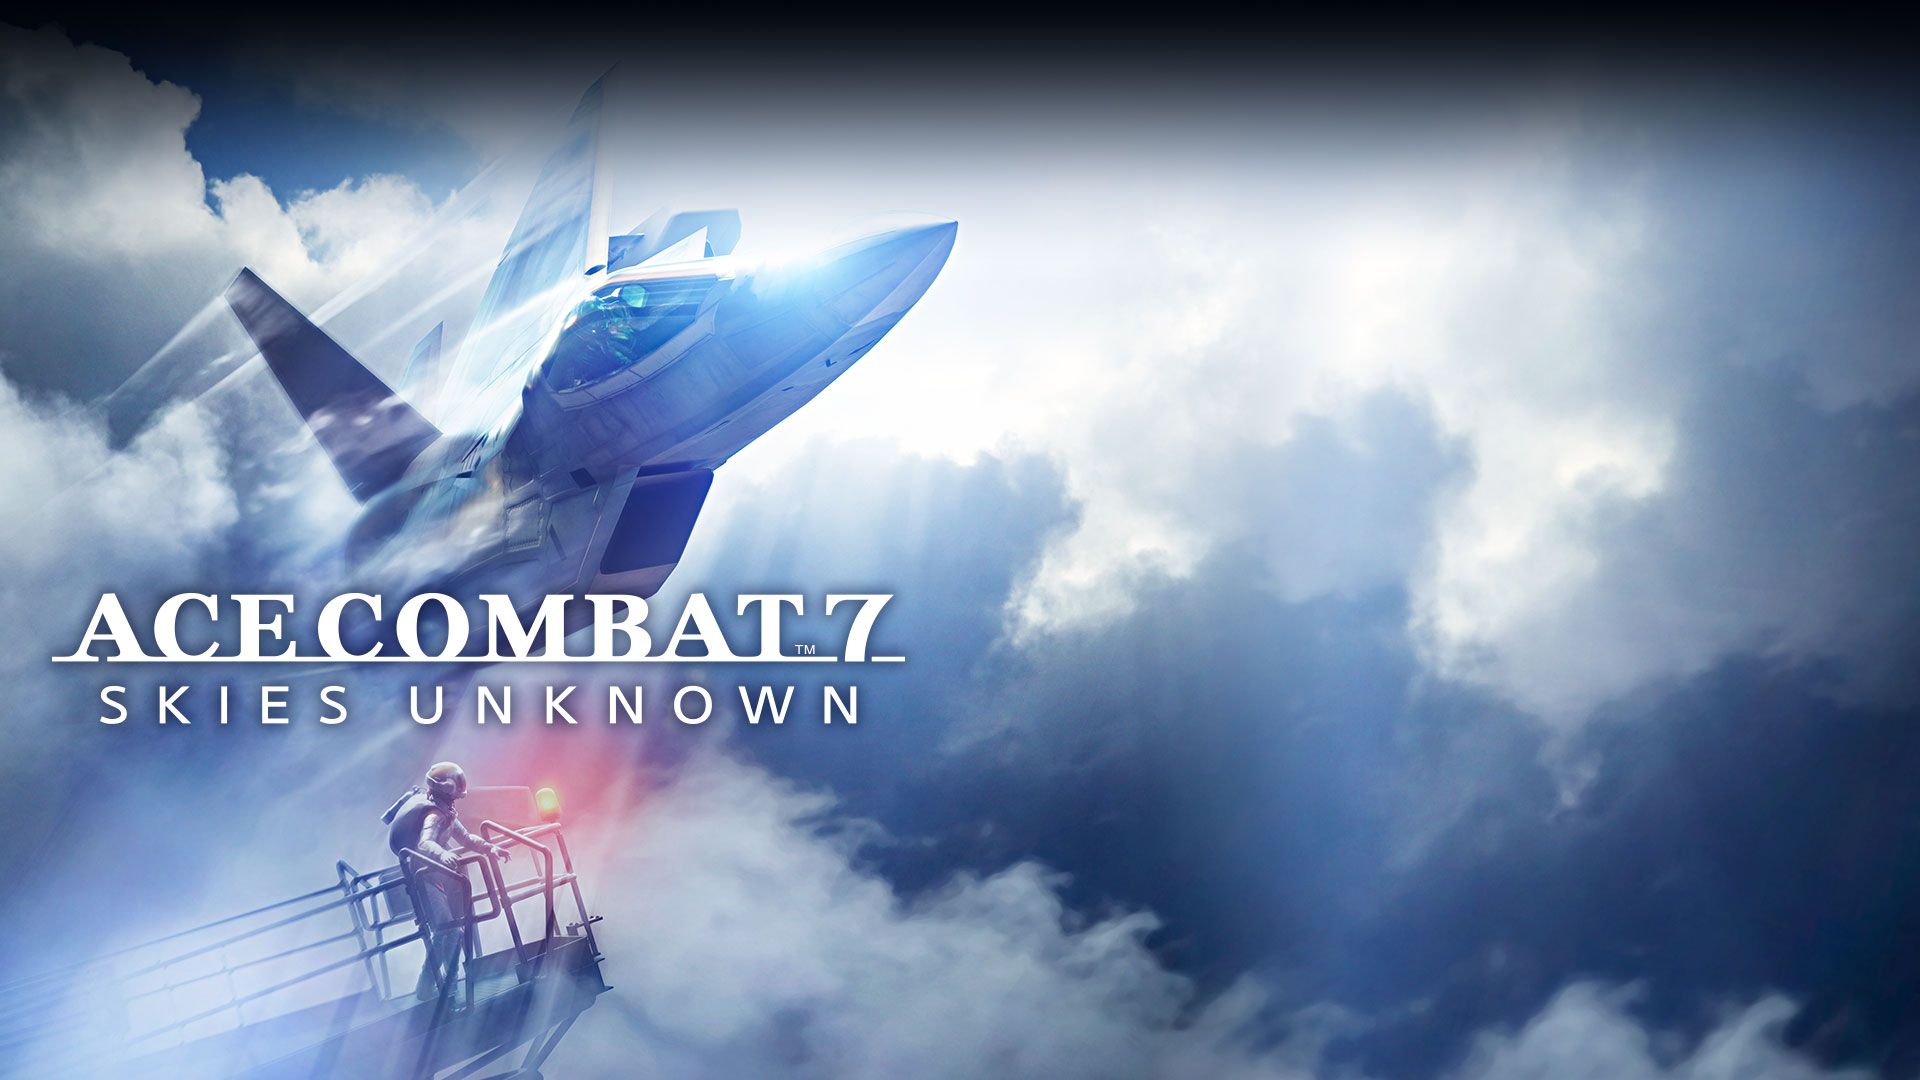 Ace Combat™ 7 Skies Unknown, Un avion de chasse fendant les nuages.